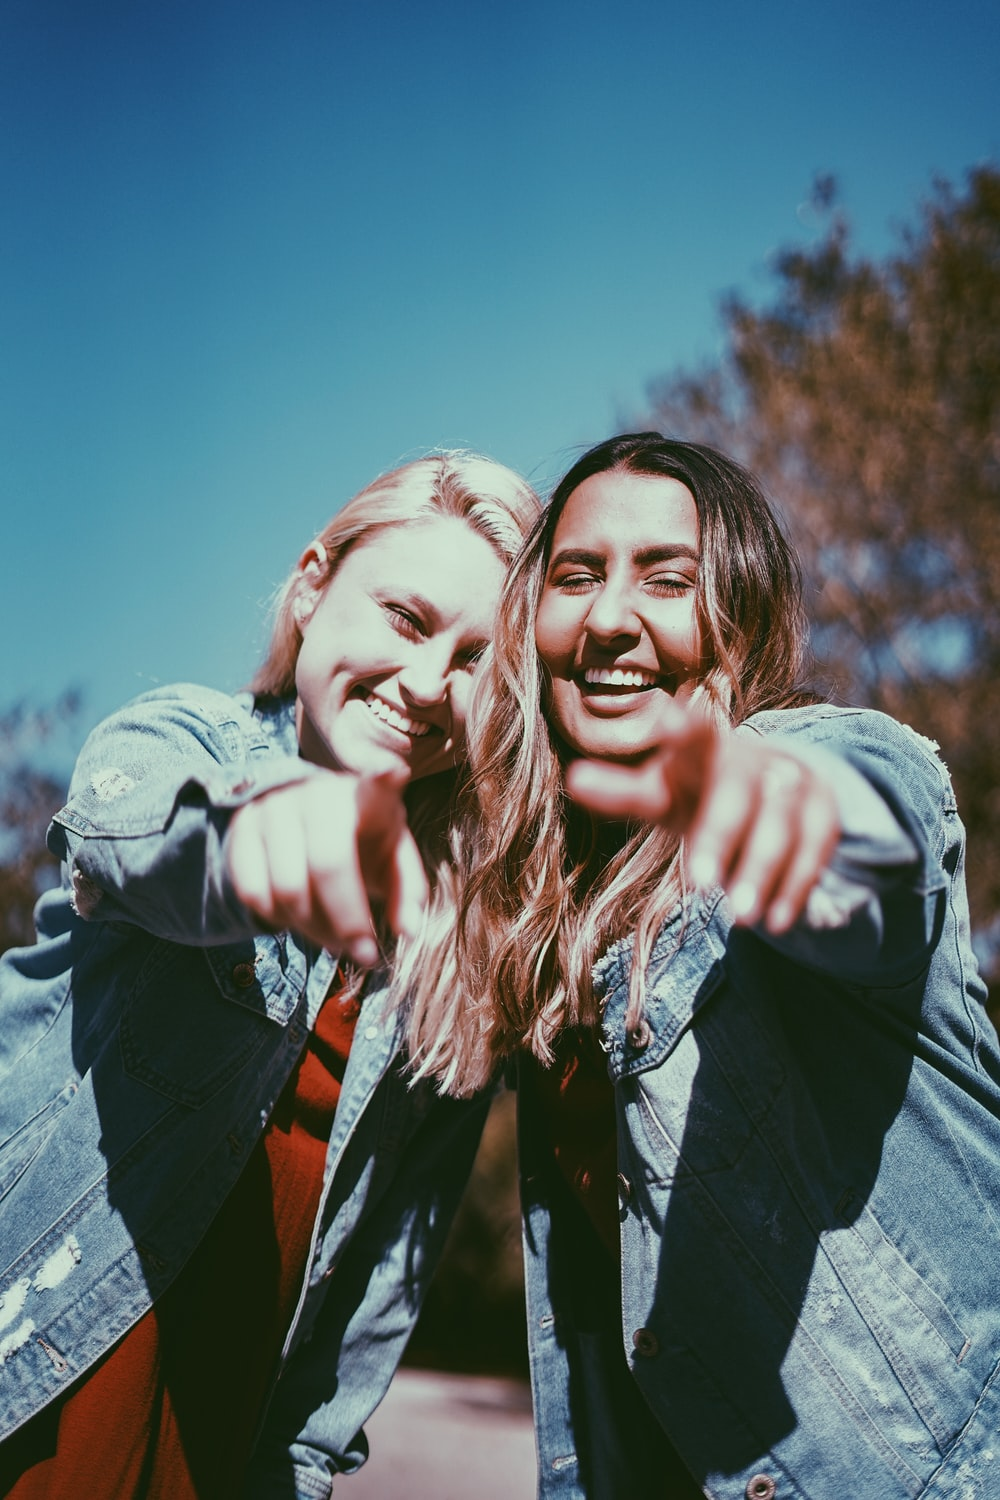 two women smiling while pointing fingers